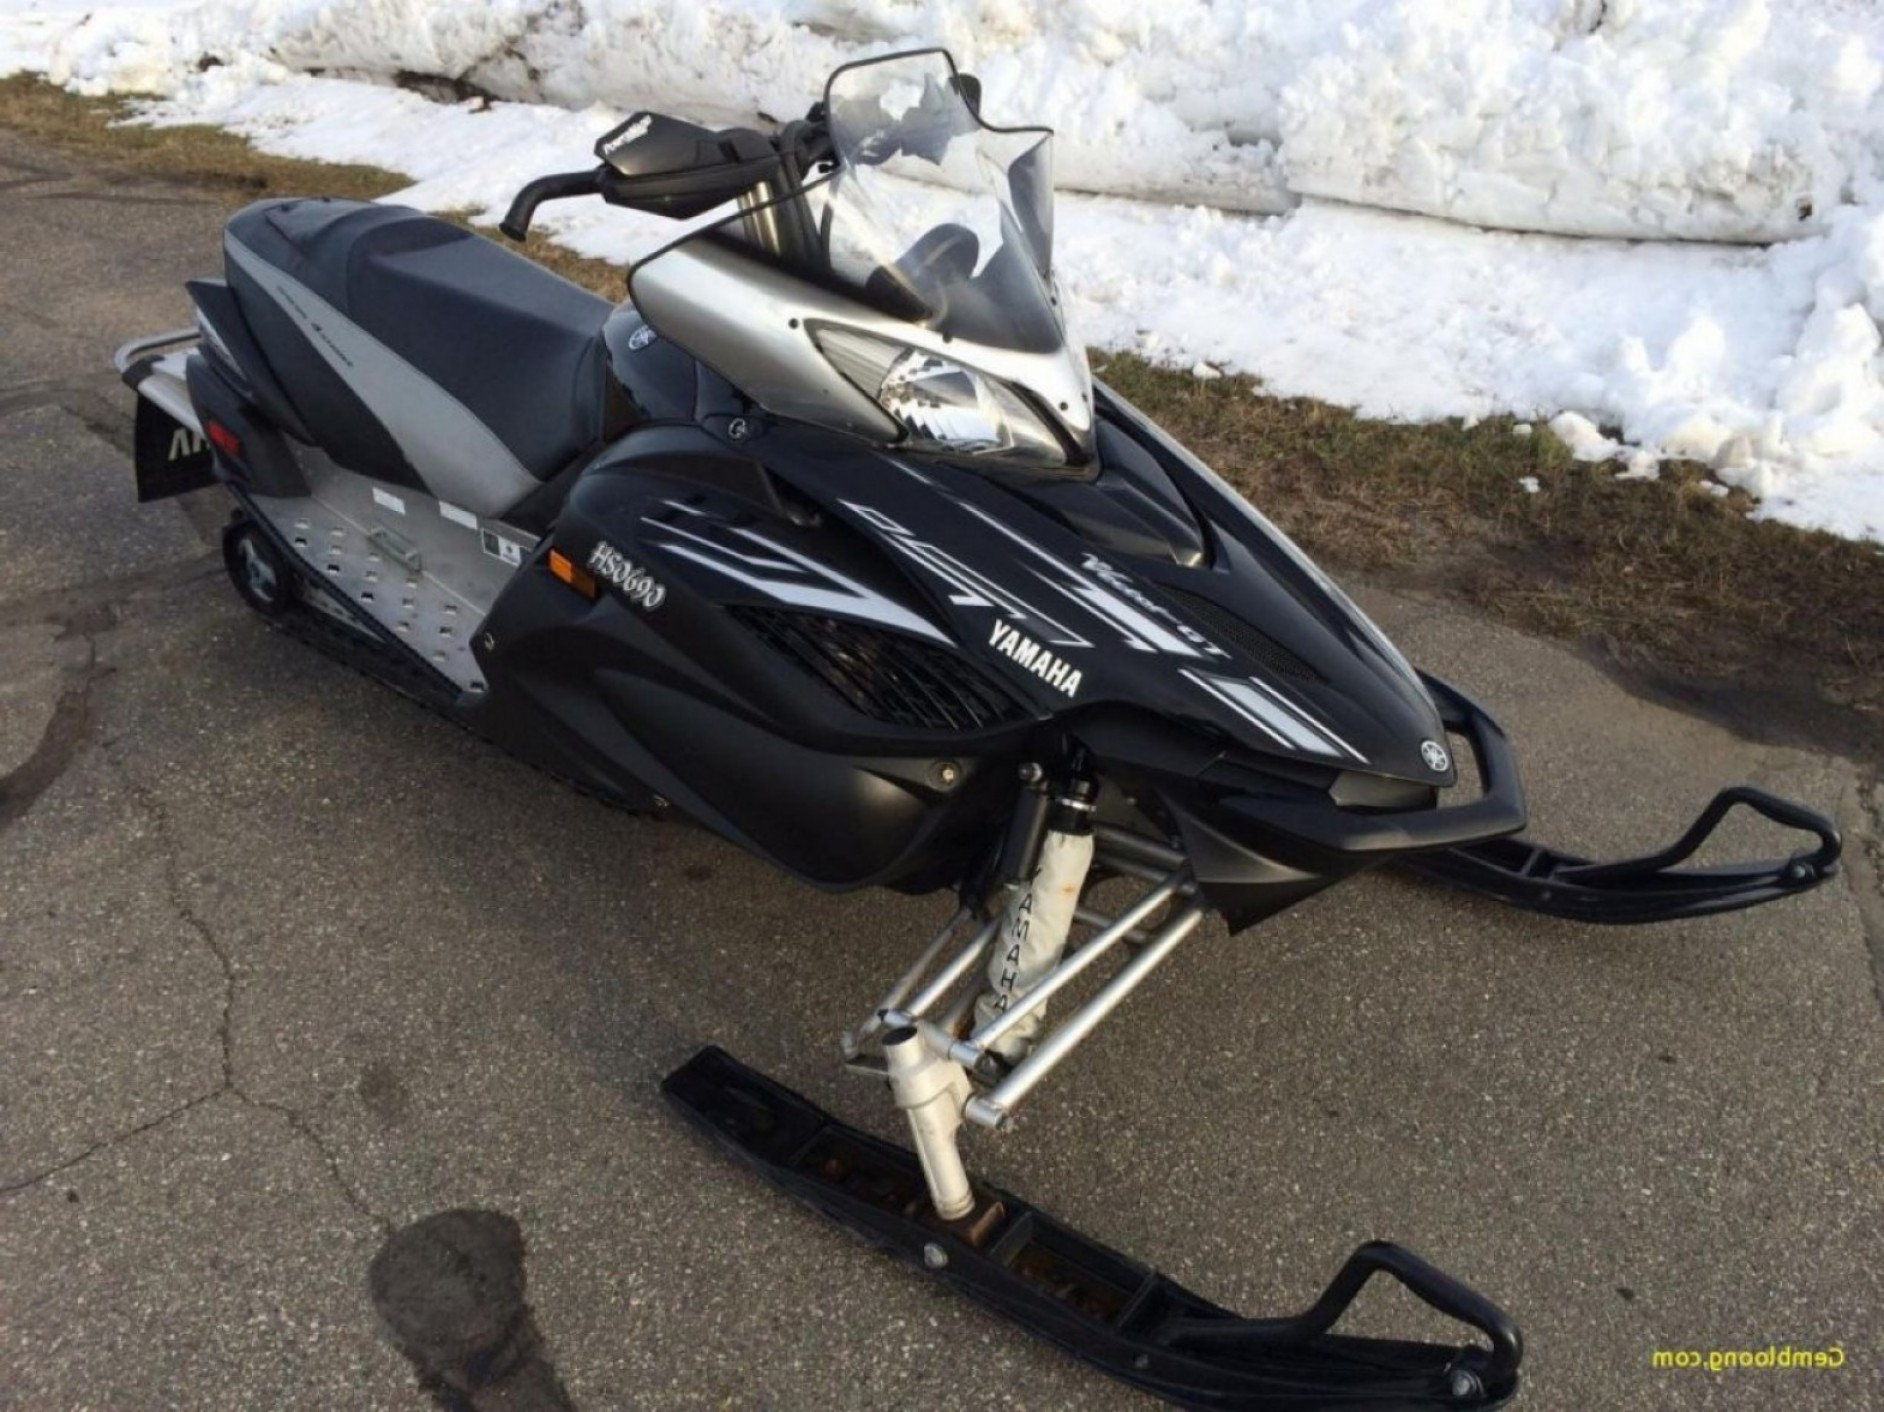 Yamaha Vector LTX Snowmobile: Used Snowmobile Sites Lovely New Used Yamaha Rs Vector Ltx Gt Snowmobiles For Sale